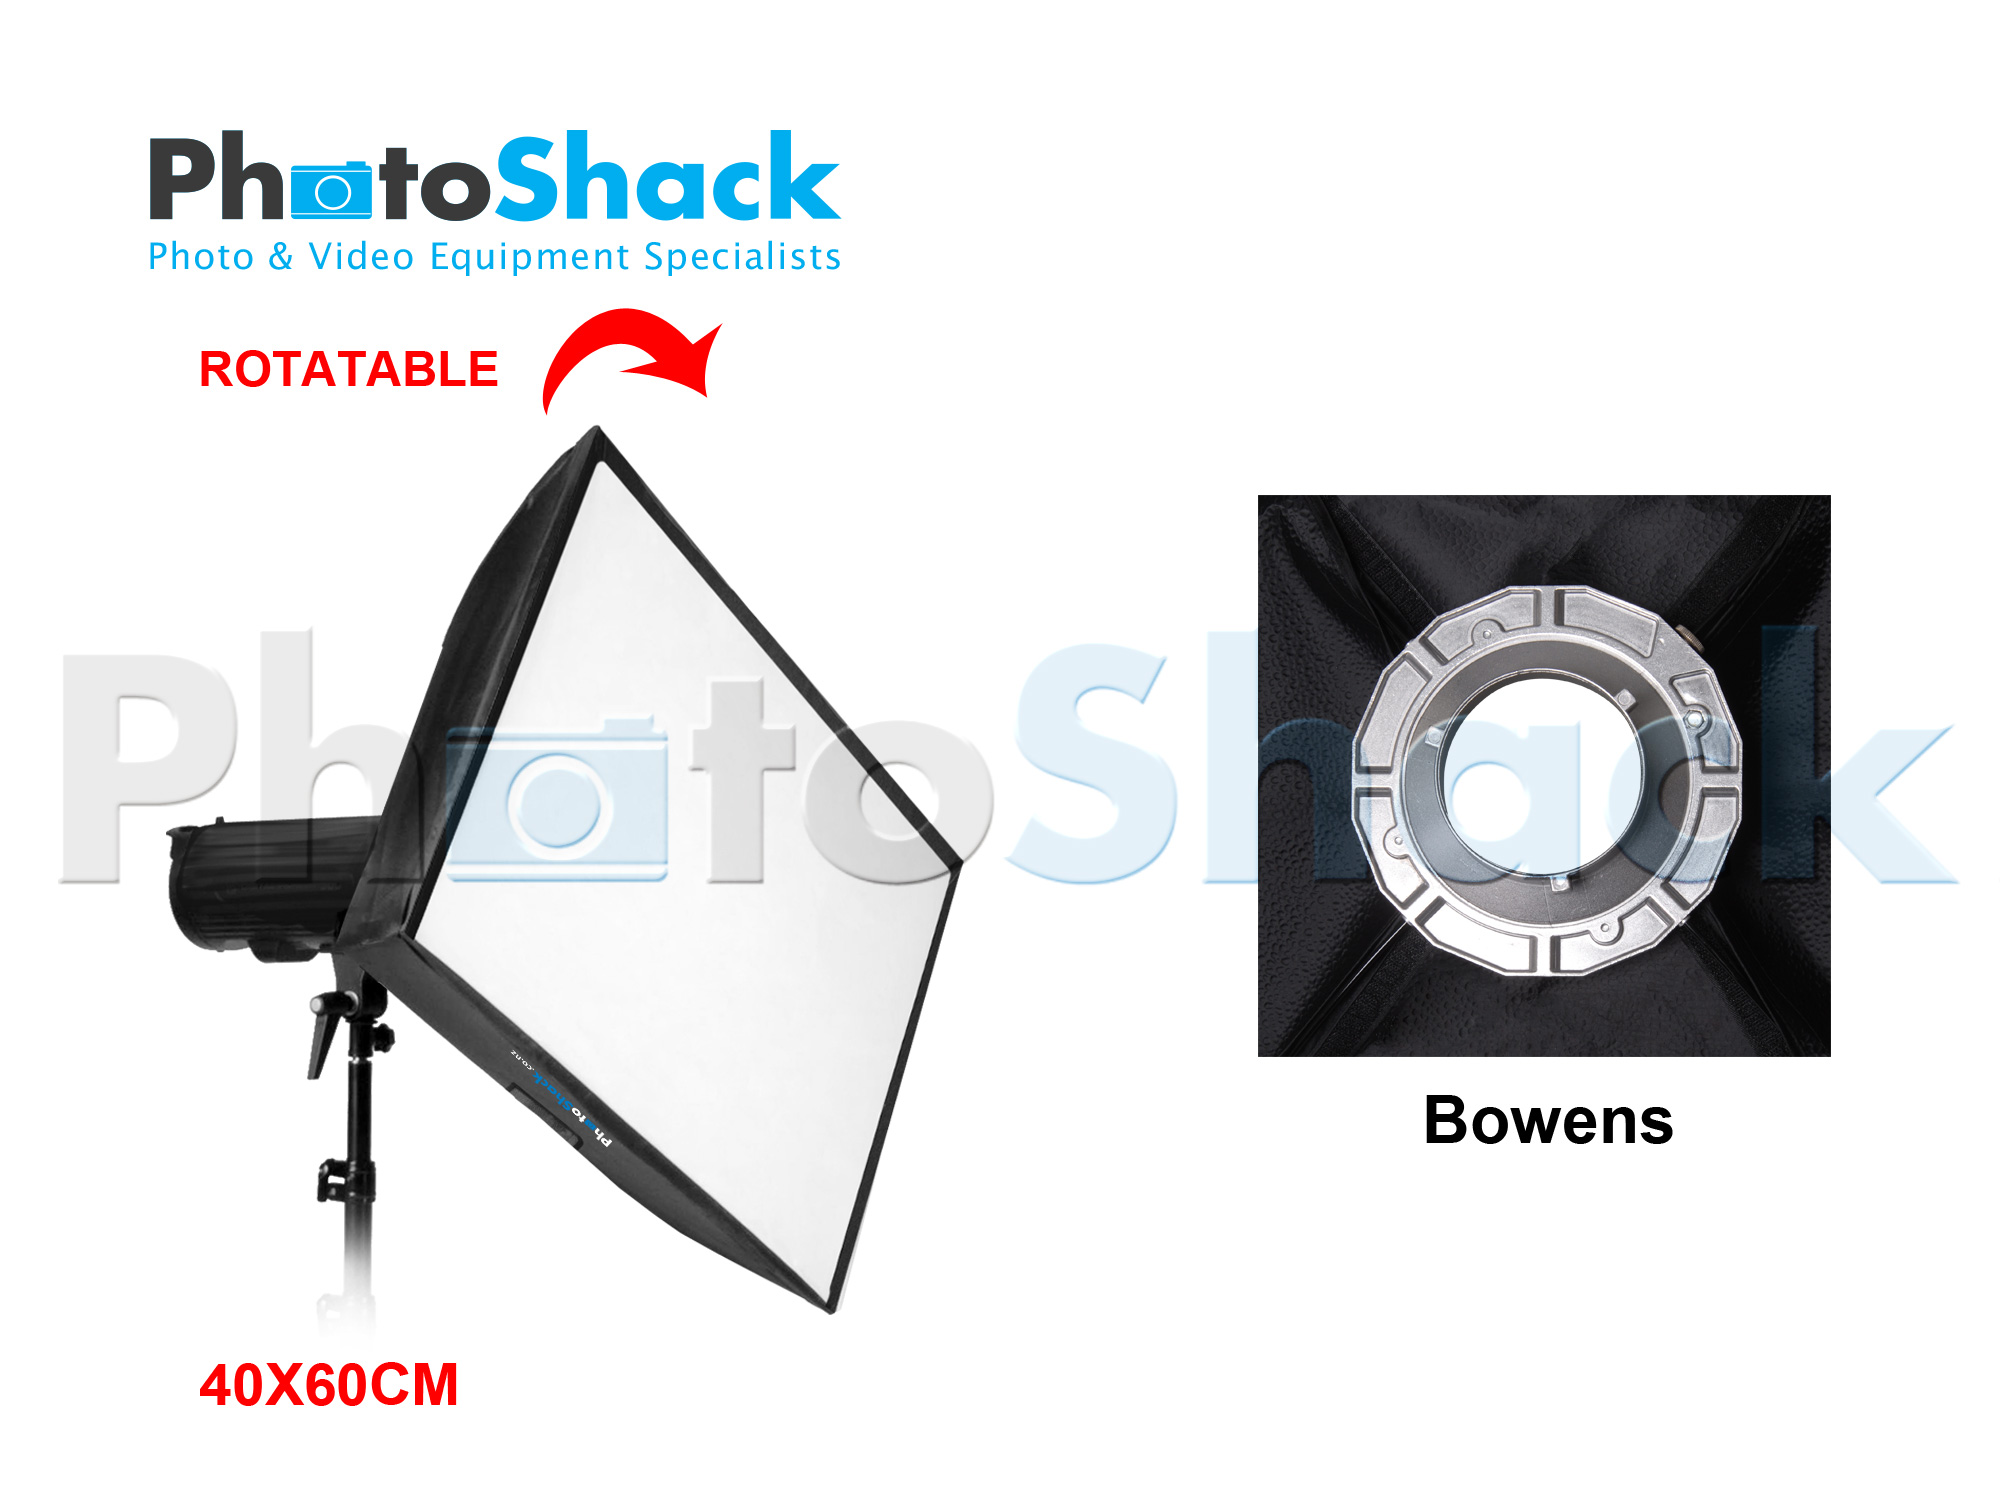 RECESSED SOFTBOX for STUDIO LIGHT (40 x 60cm) - Bowens